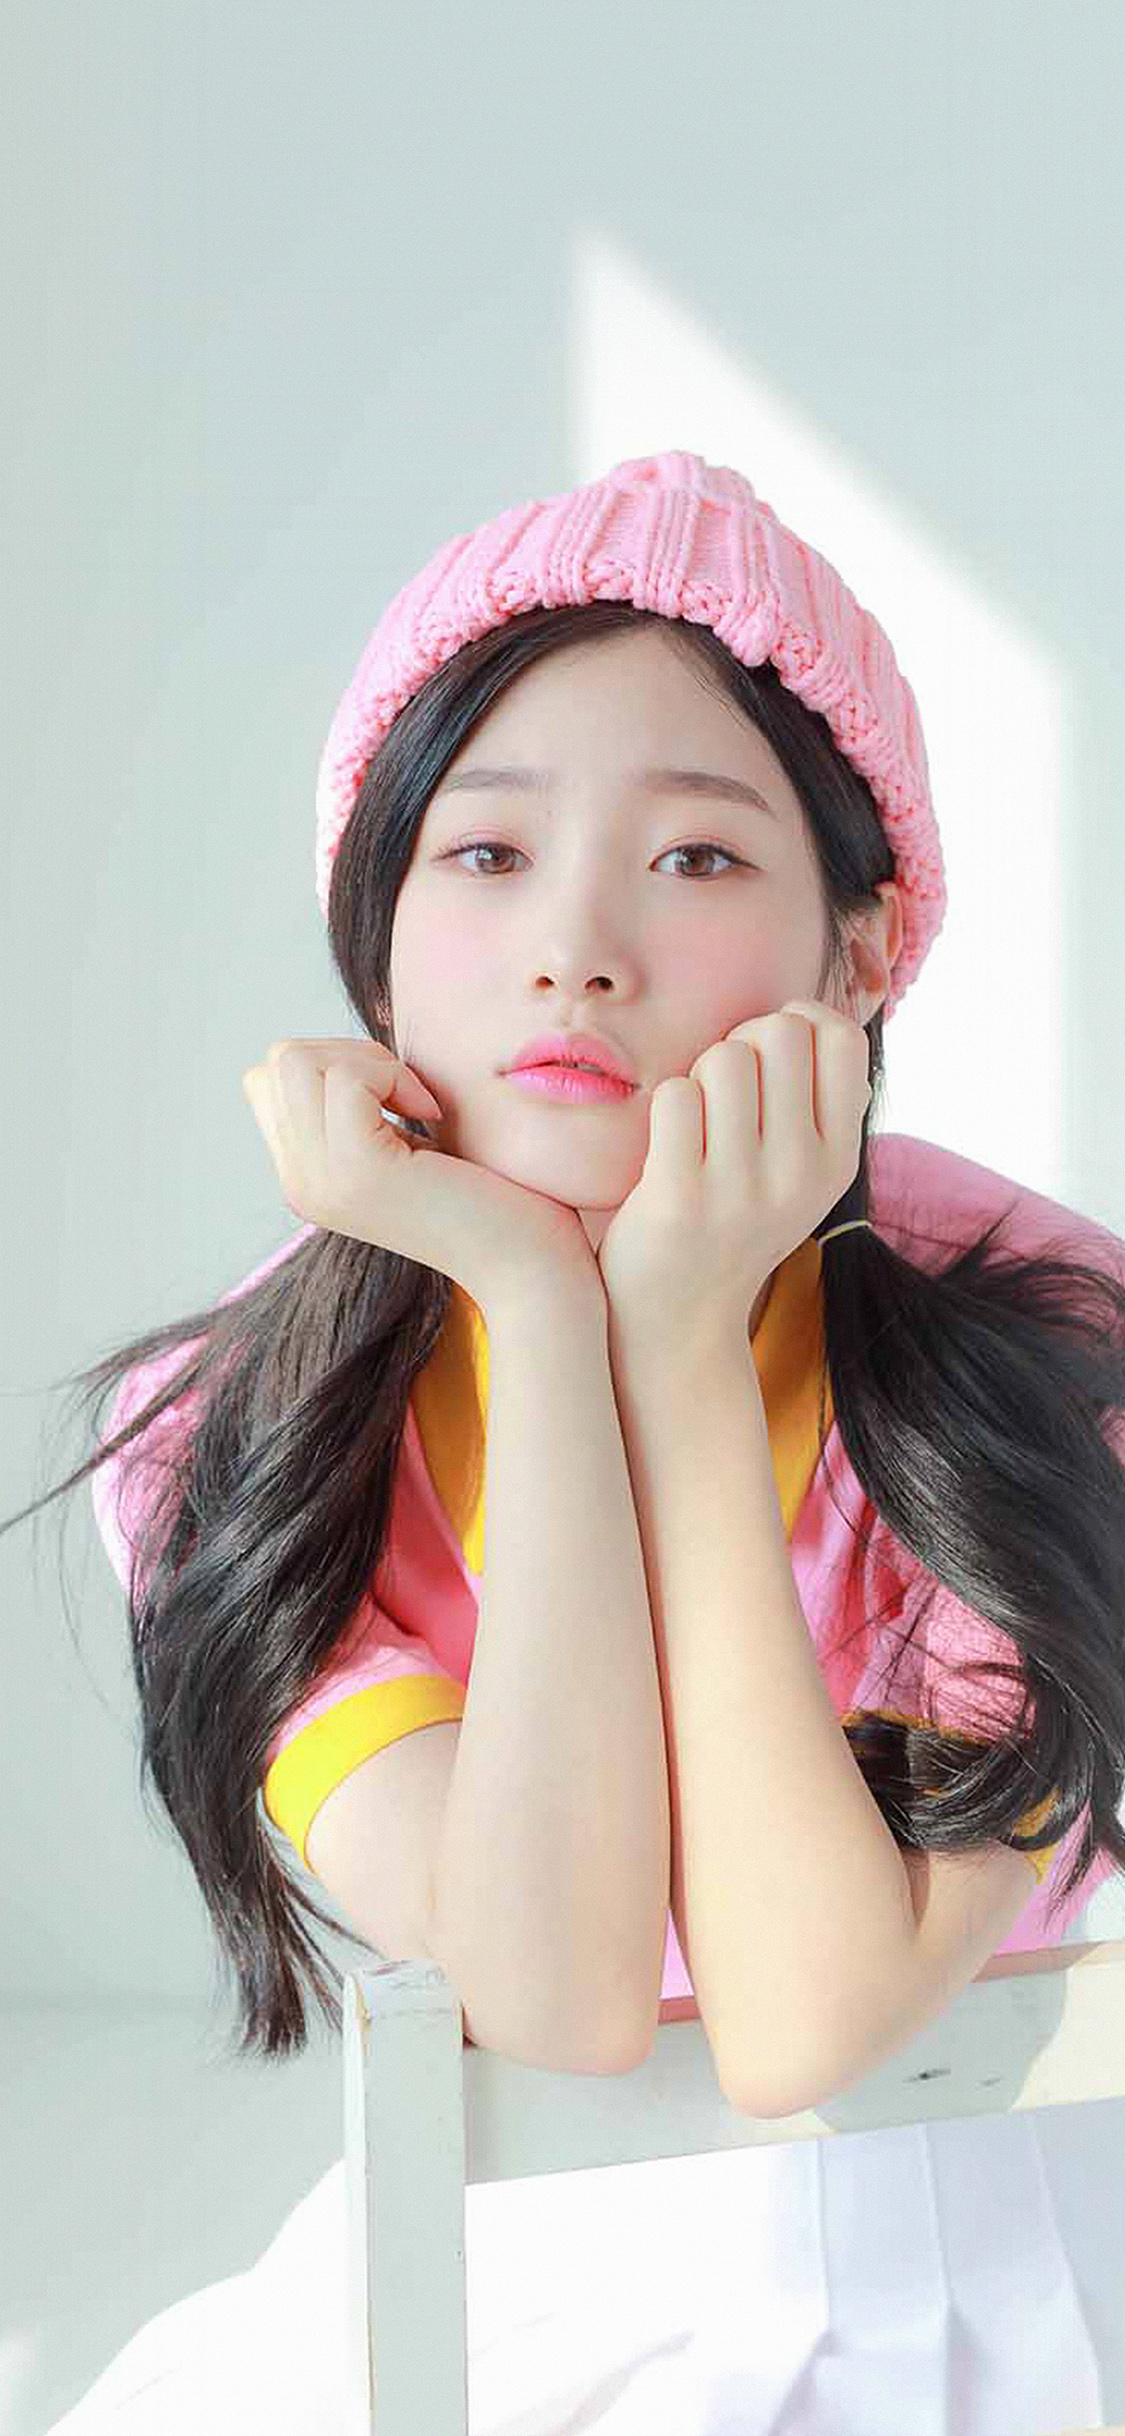 iPhoneXpapers.com-Apple-iPhone-wallpaper-hm45-ioi-chaeyeon-girl-pink-white-asian